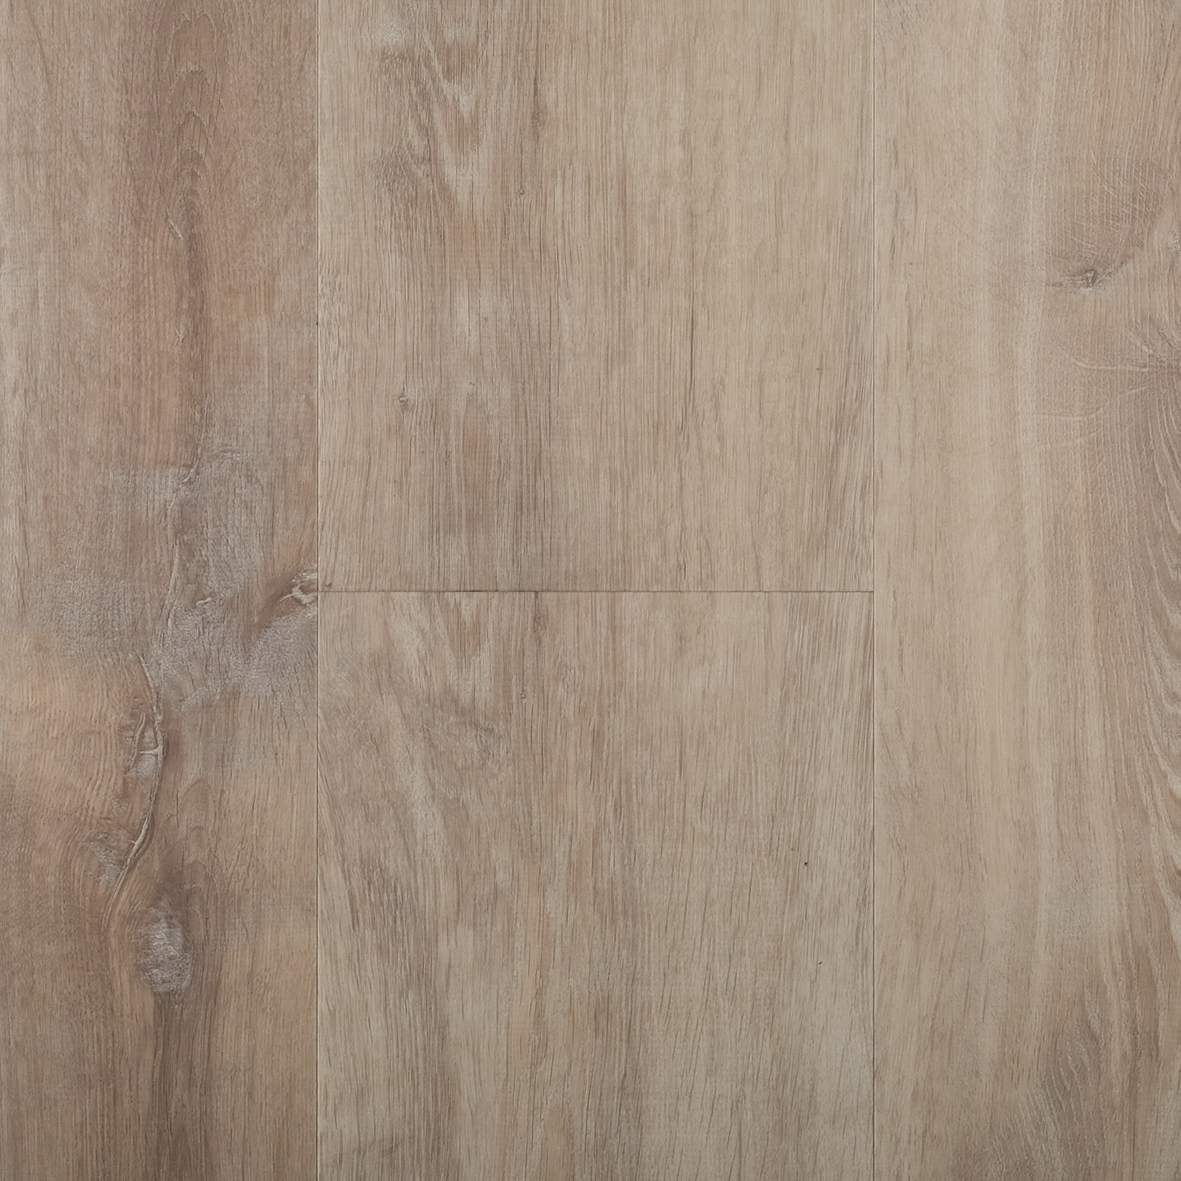 Fusion Superior 96715 Golden Oak white